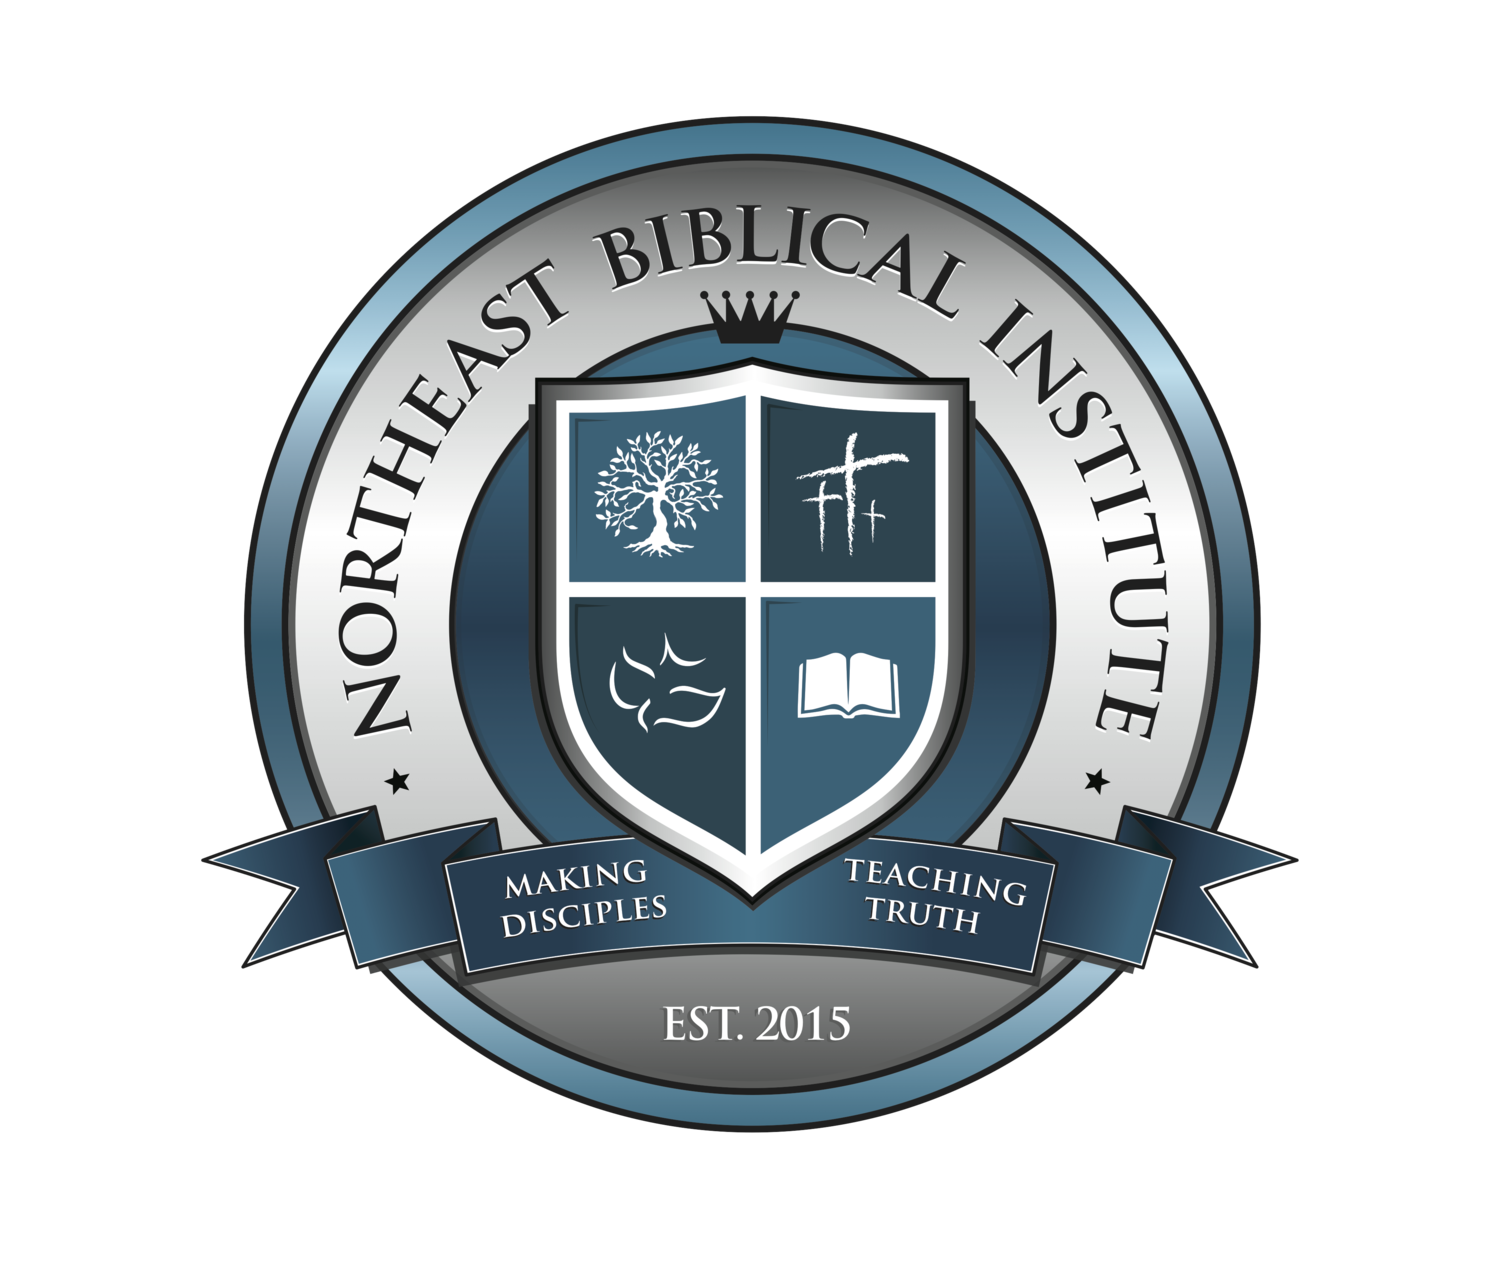 Northeast Biblical Institute